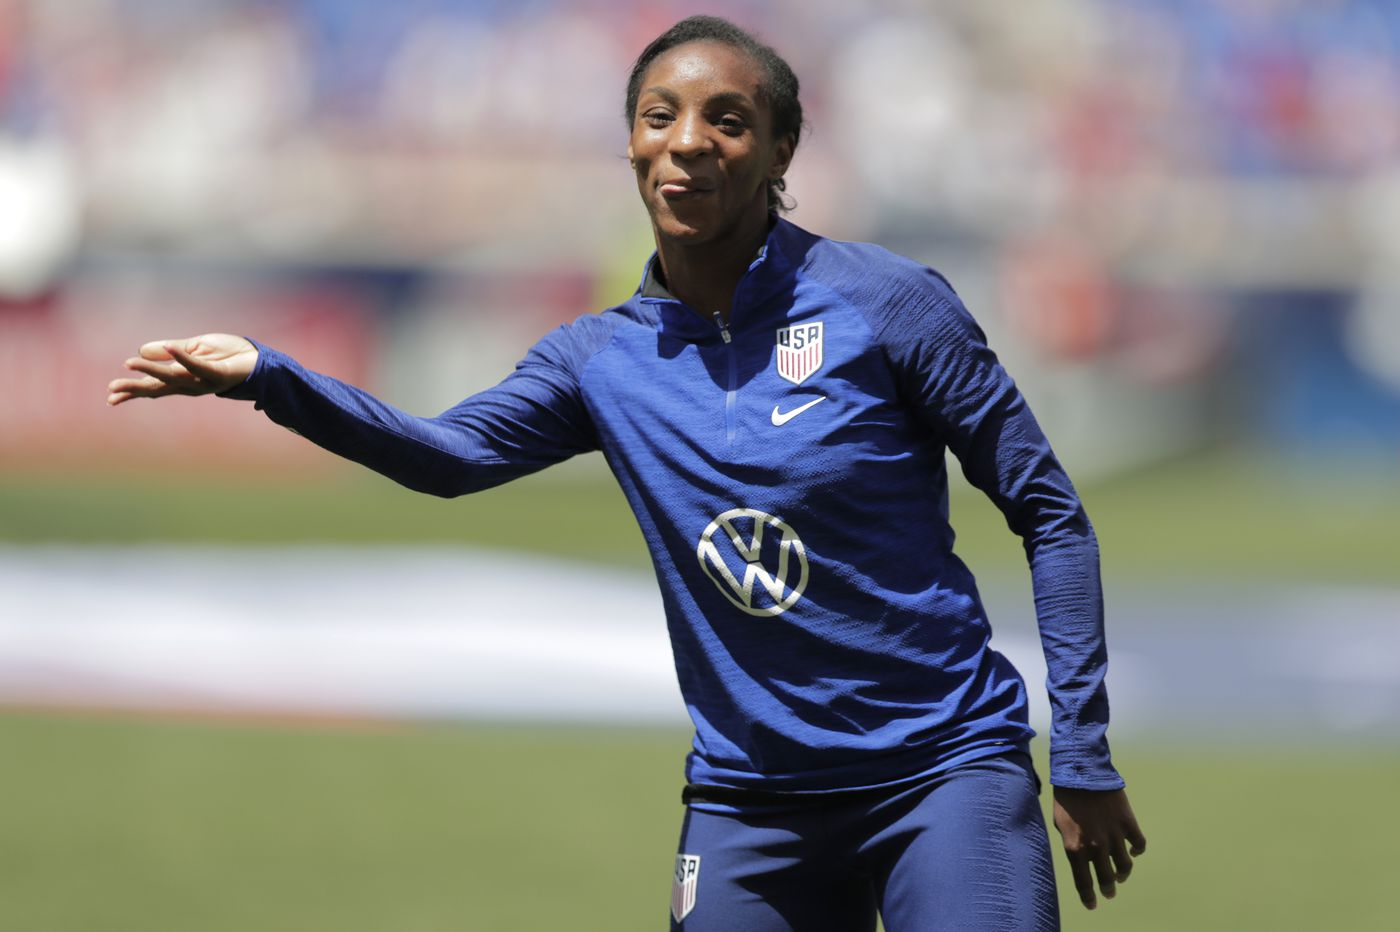 USWNT's versatile Crystal Dunn readies for first World Cup after being last cut in 2015